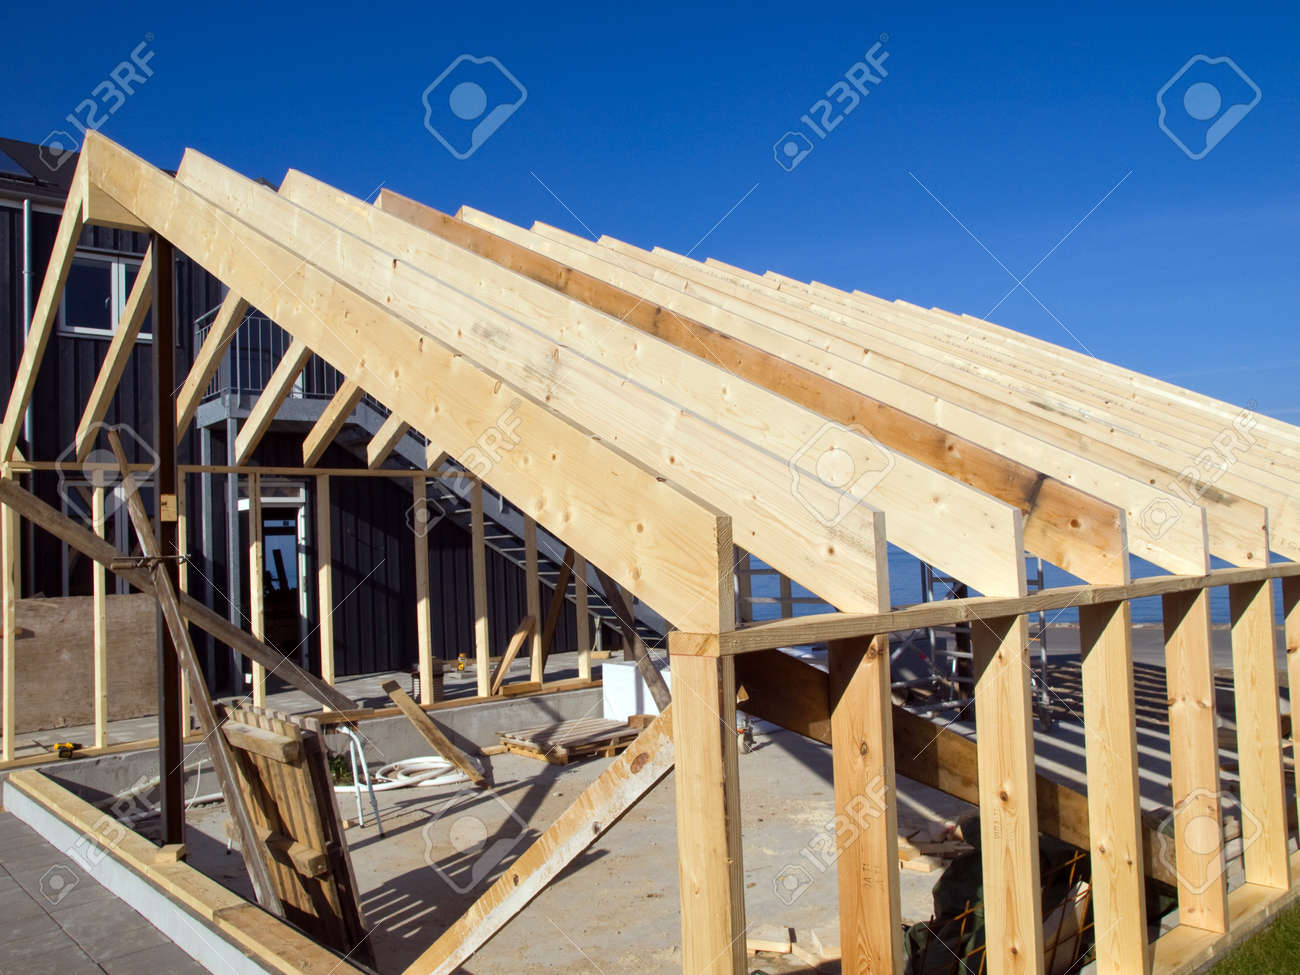 Details of a wooden house building frame under construction Stock Photo - 8336728